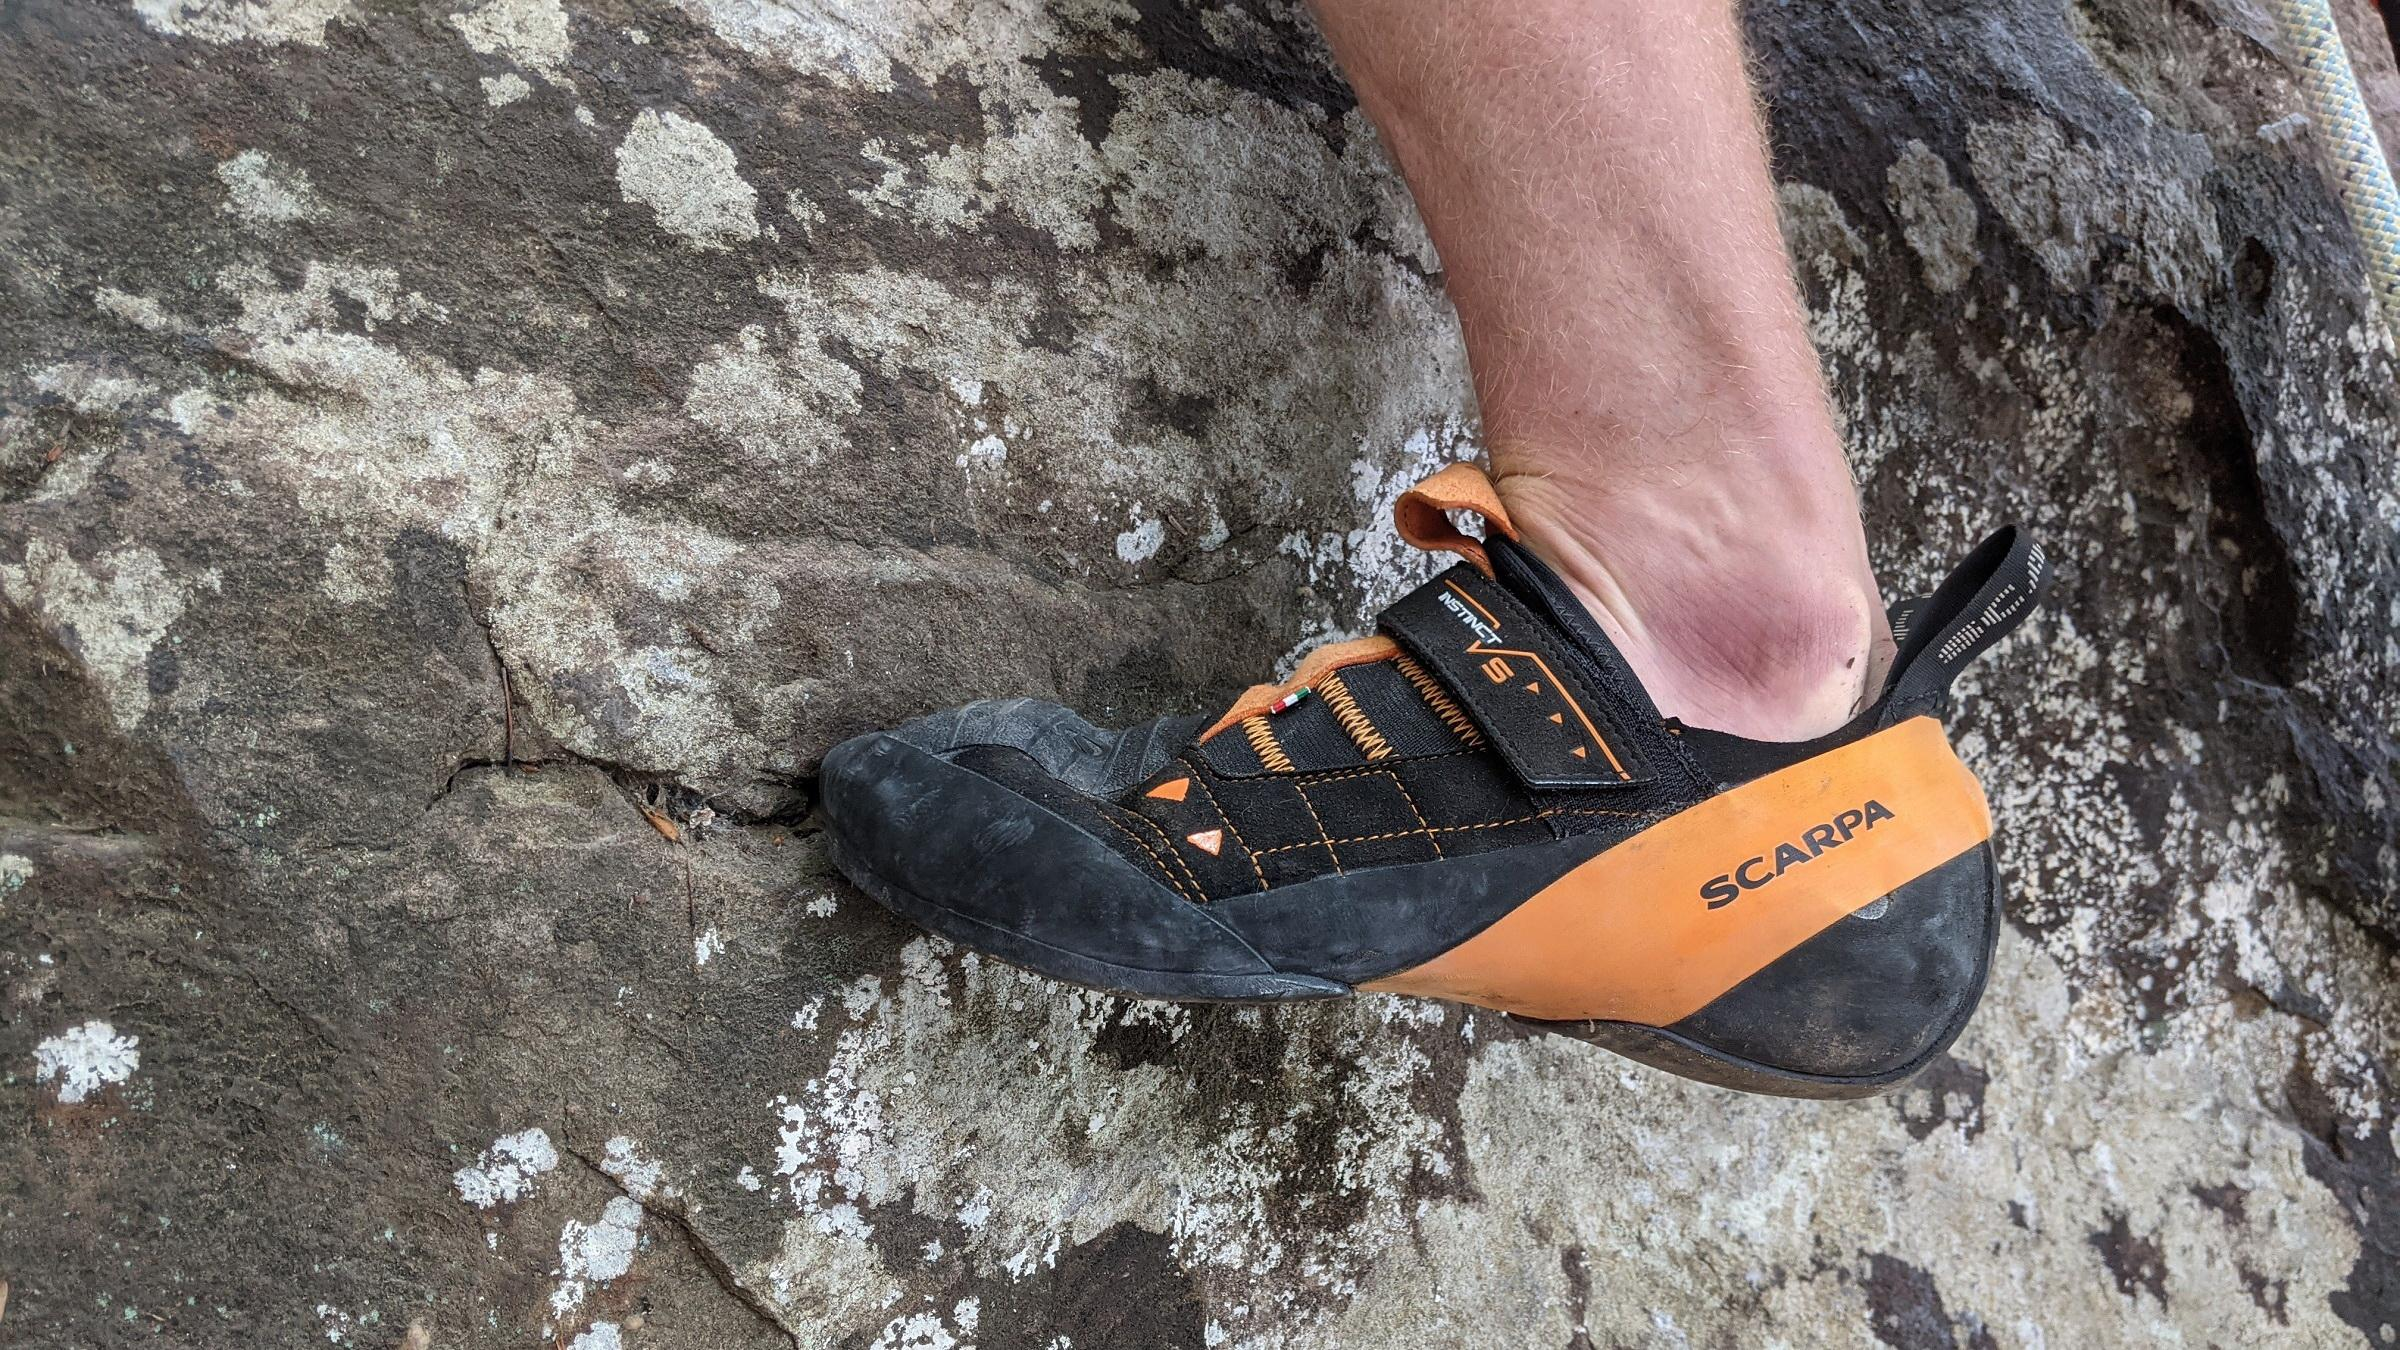 10 Best Climbing Shoes For Beginners in 2021